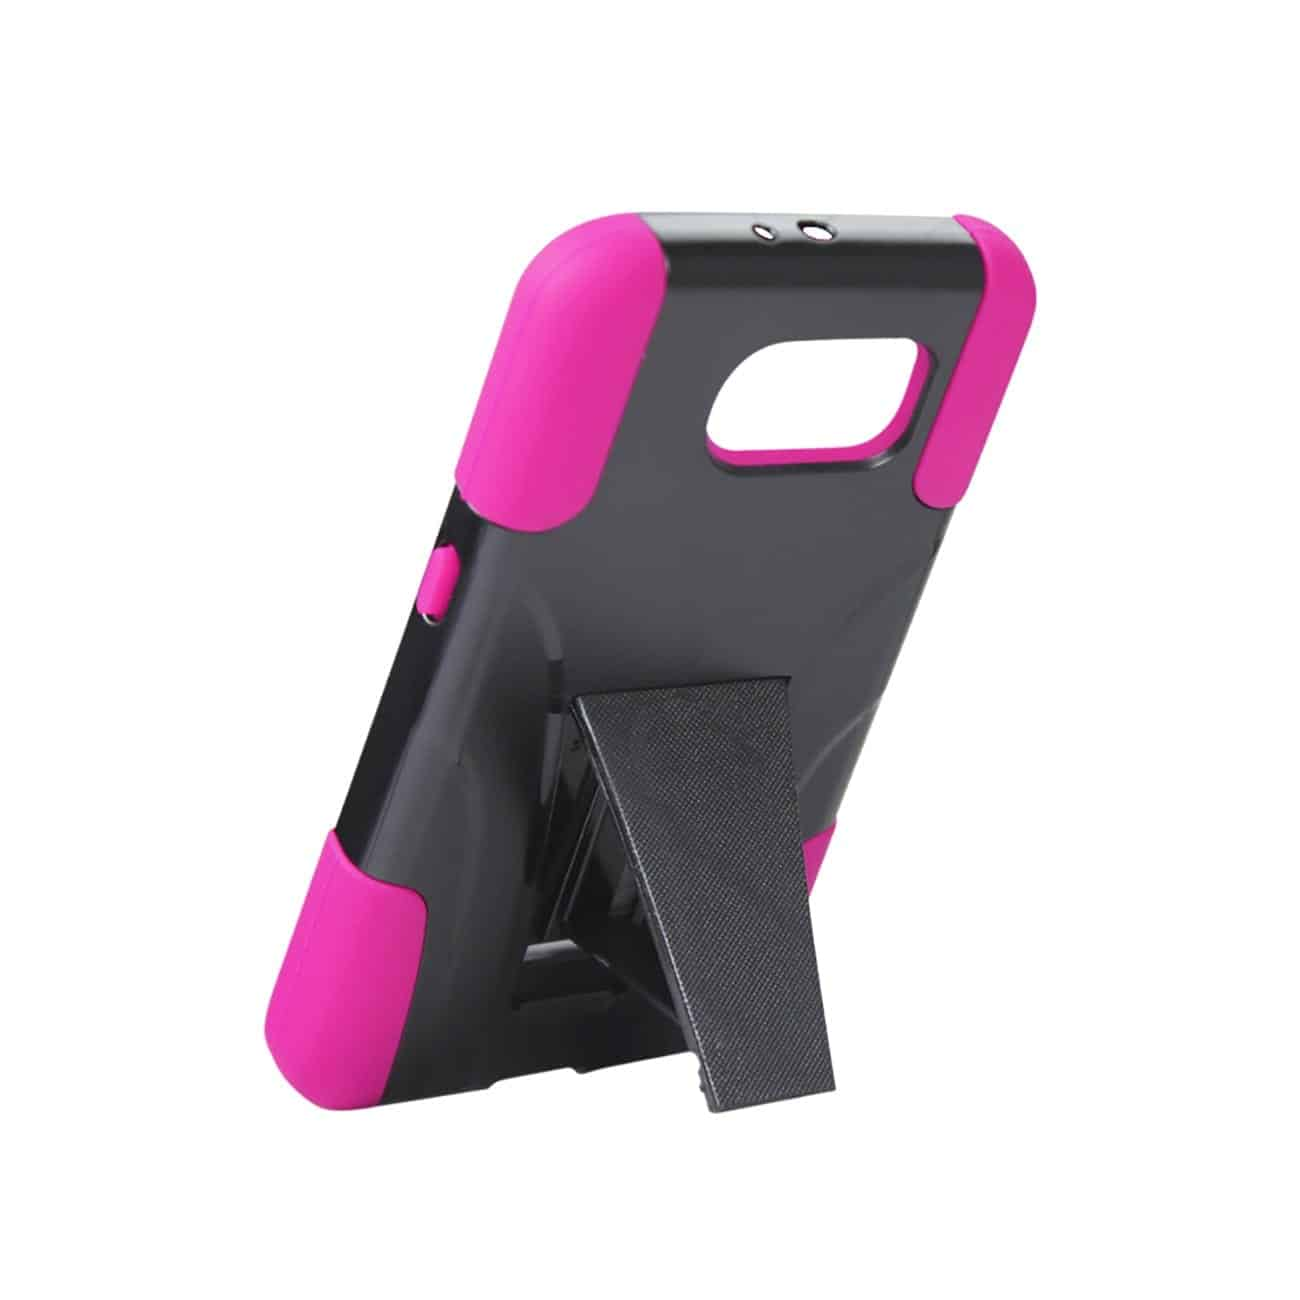 SAMSUNG GALAXY S6 HYBRID HEAVY DUTY CASE WITH KICKSTAND IN HOT PINK BLACK